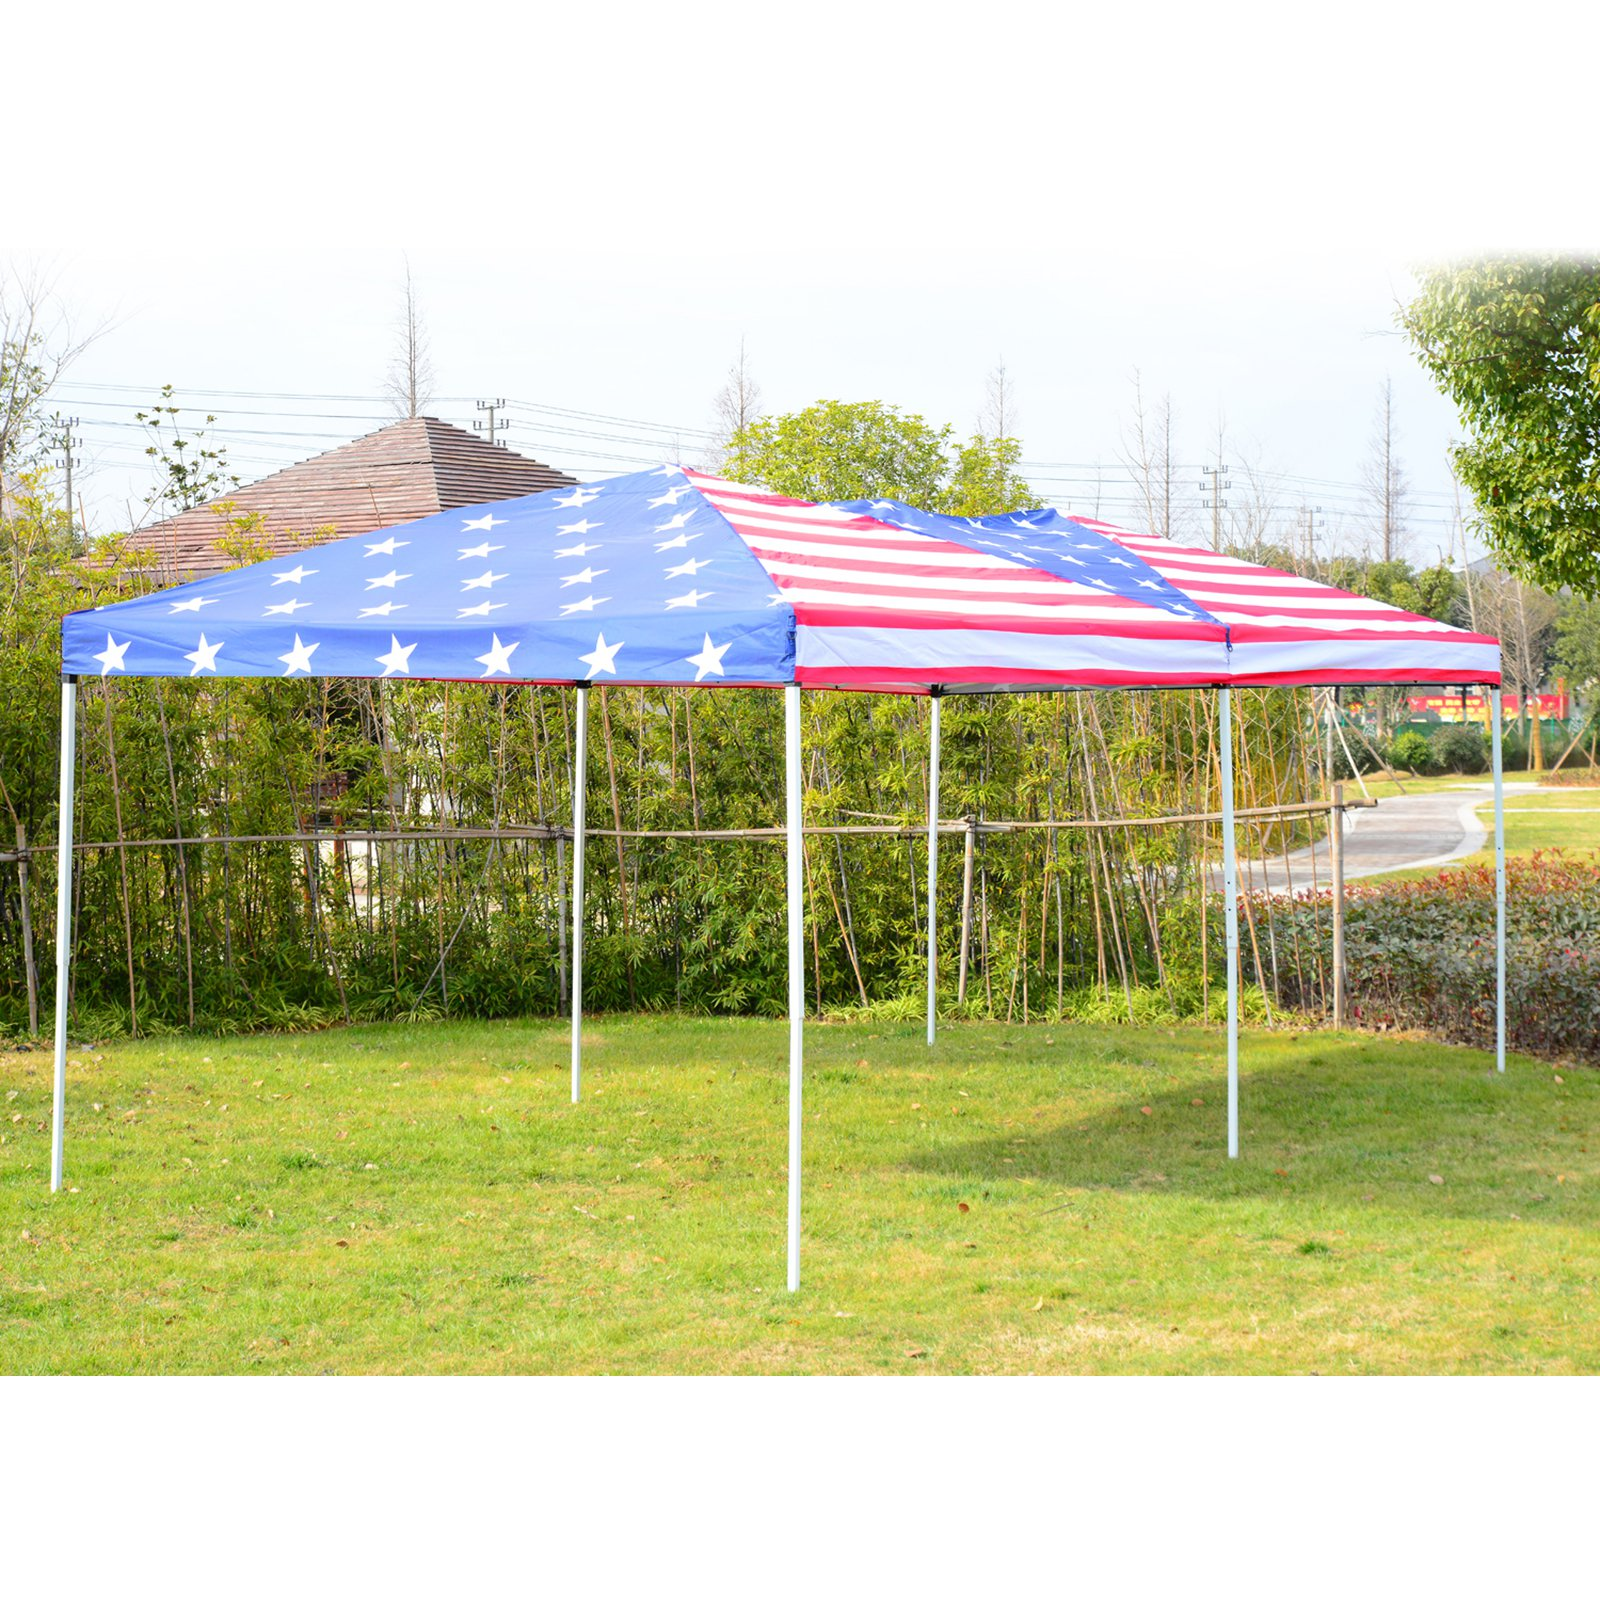 Outsunny 10 x 20 ft. Pop Up Shelter Party Tent Canopy with Mesh Walls